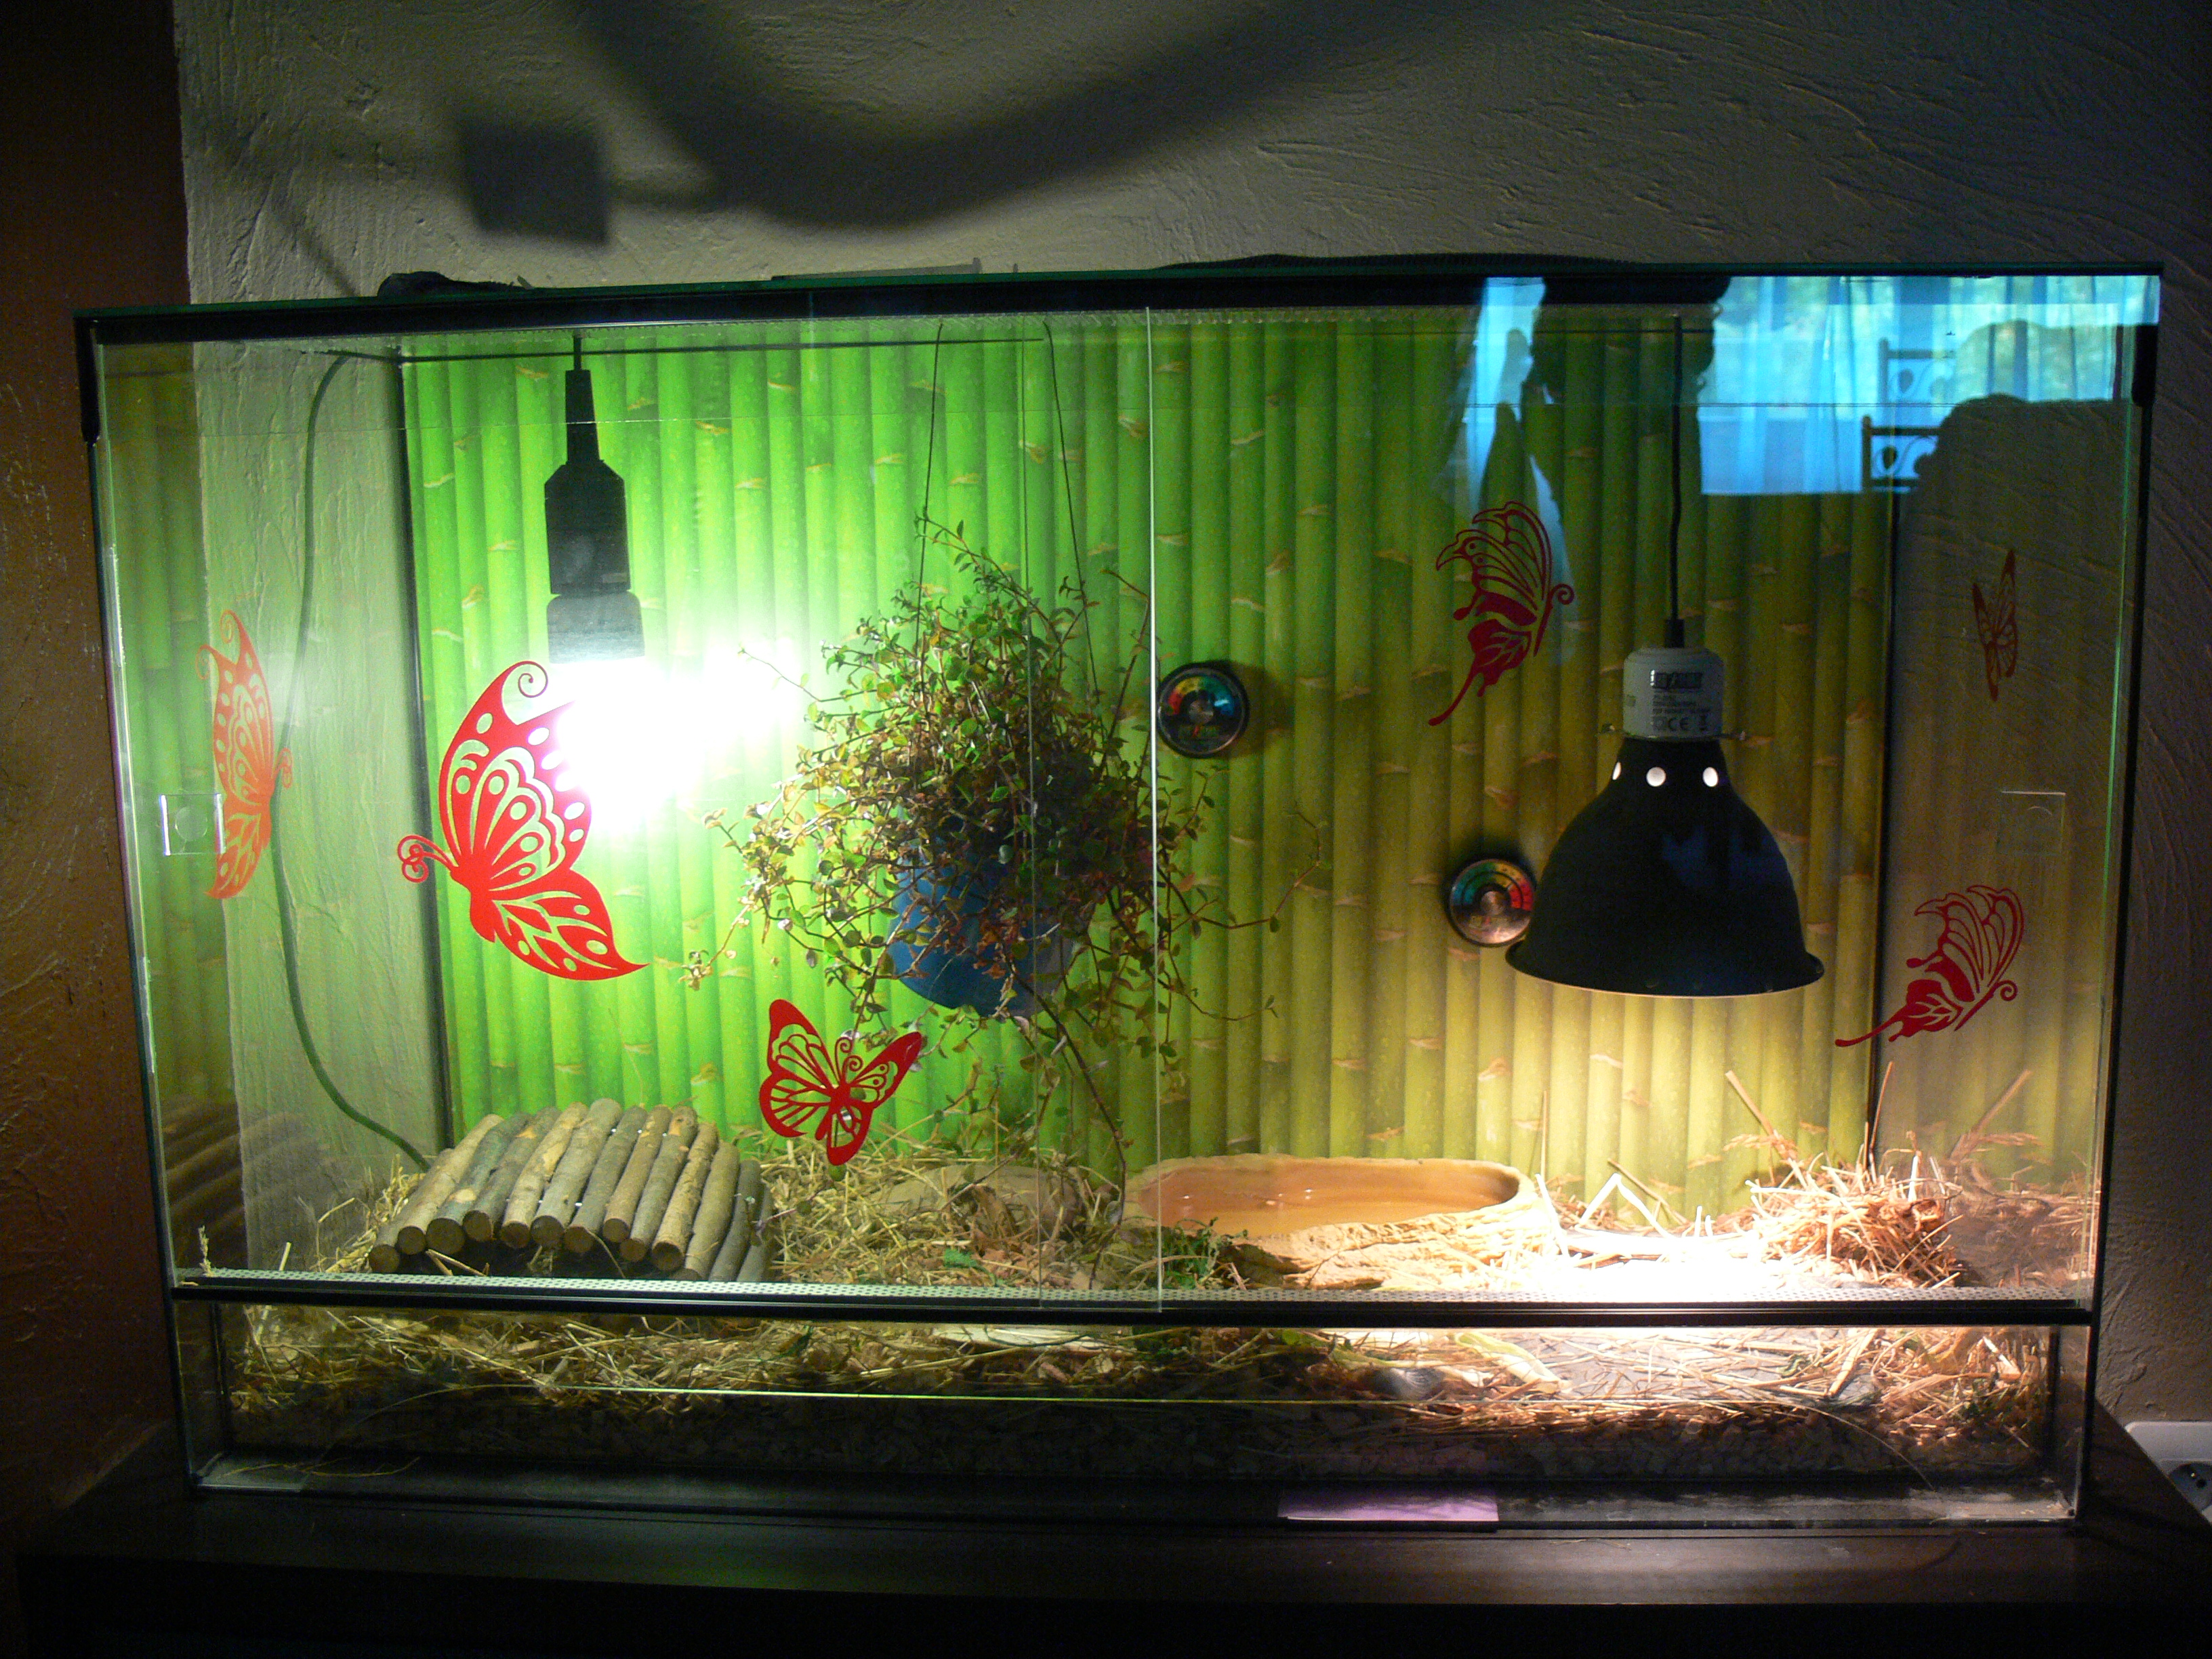 comment amenager un terrarium pour tortue